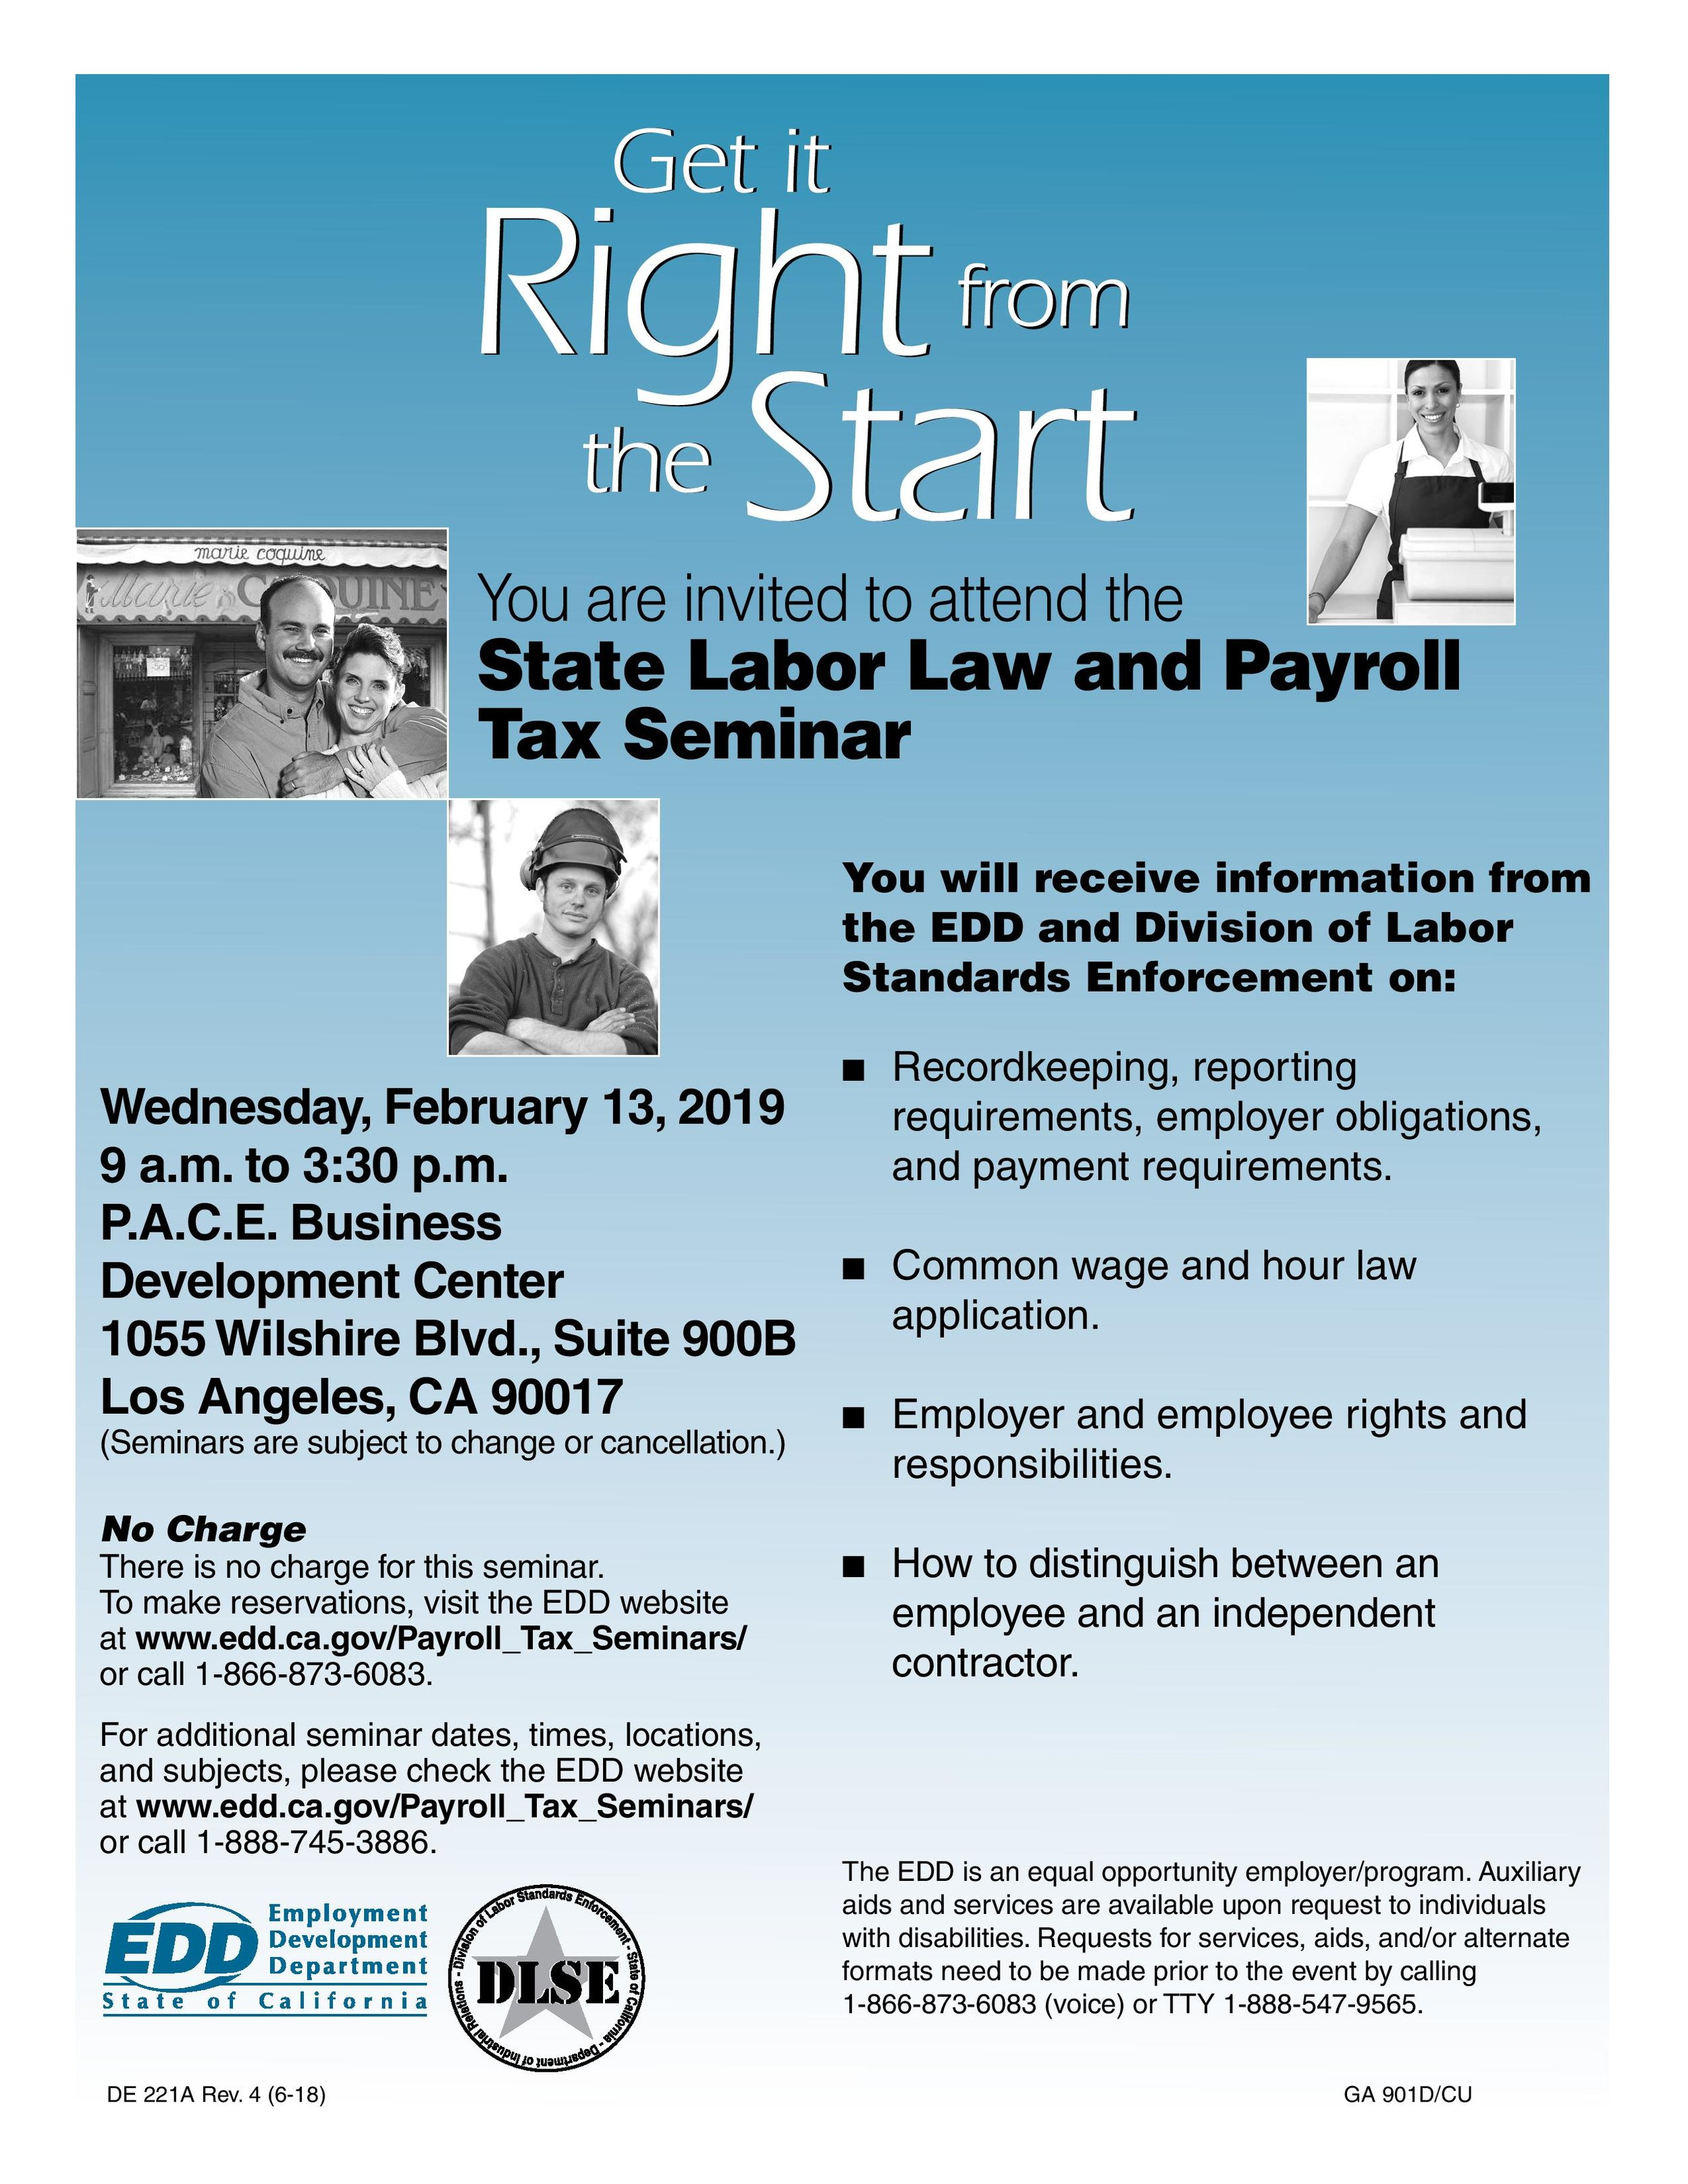 state labor law and payroll tax seminar - February 13th, 2019